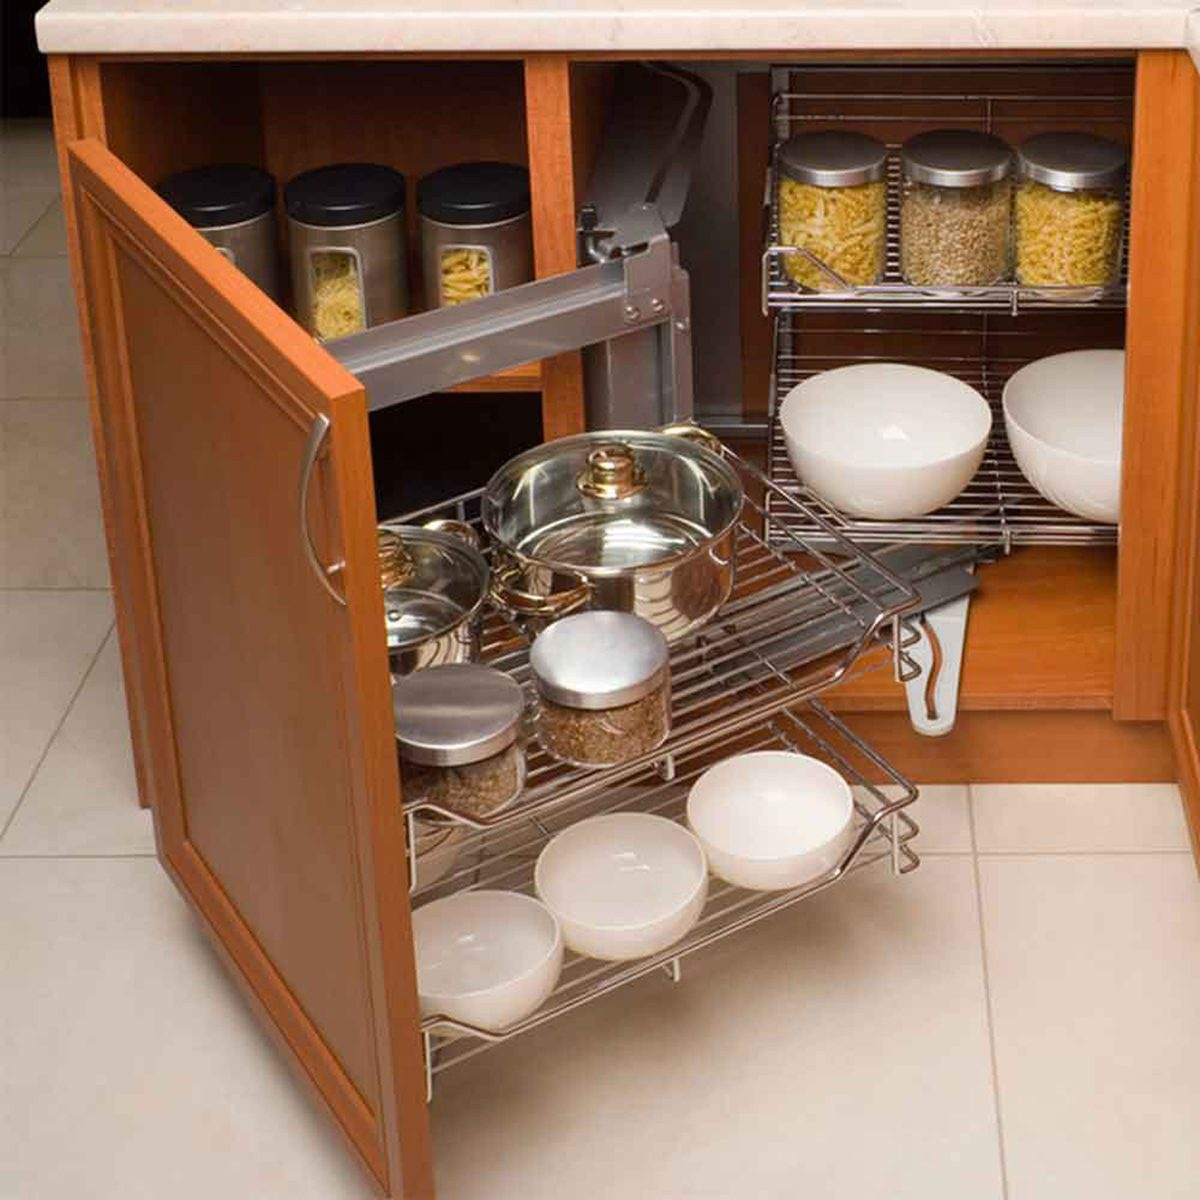 Expandable Shelves in Cabinets